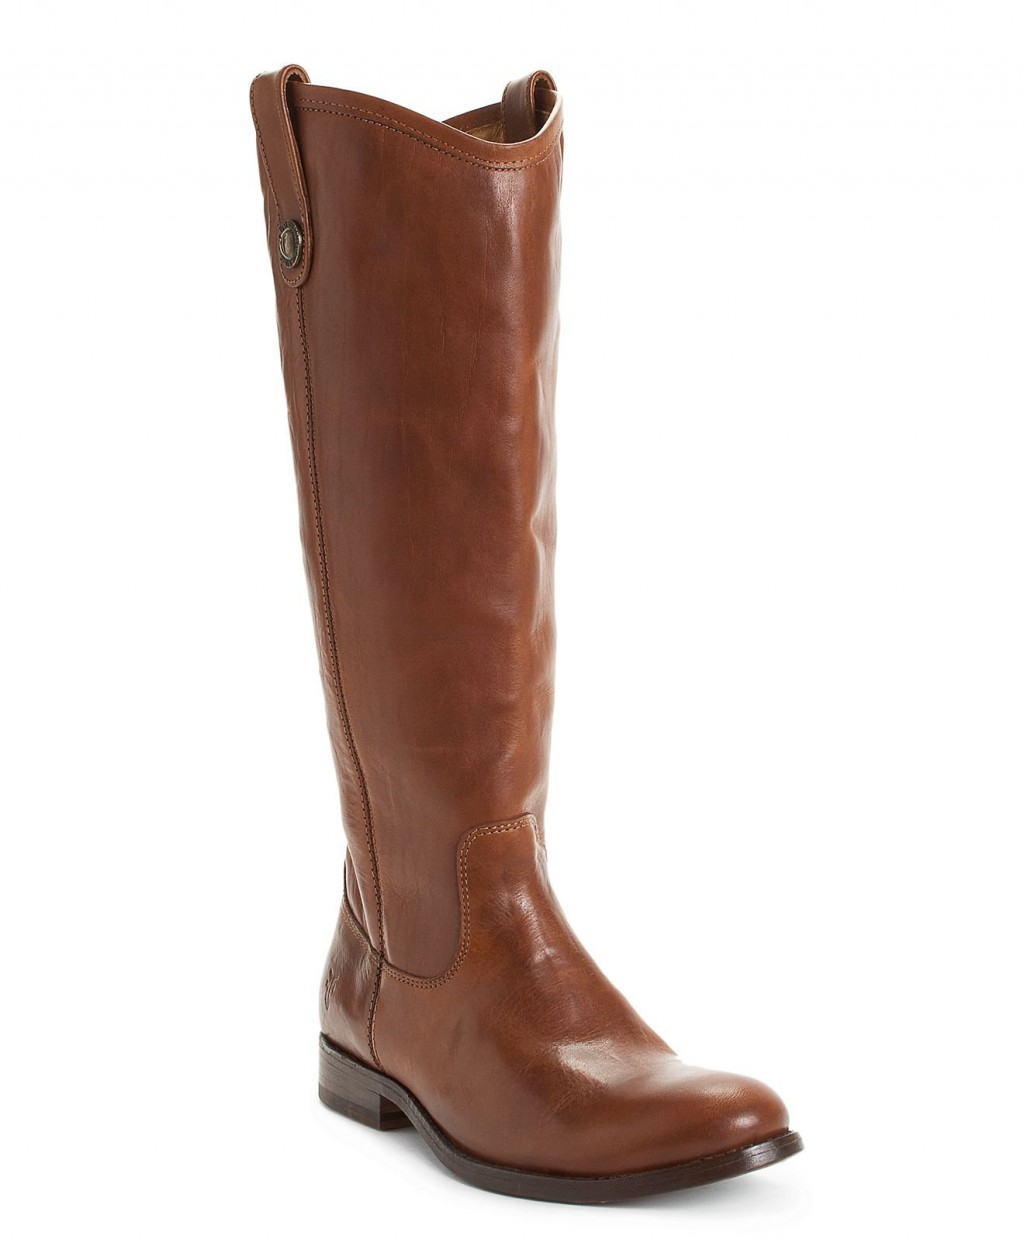 Charming Macy\s Boots product Image in Shoes